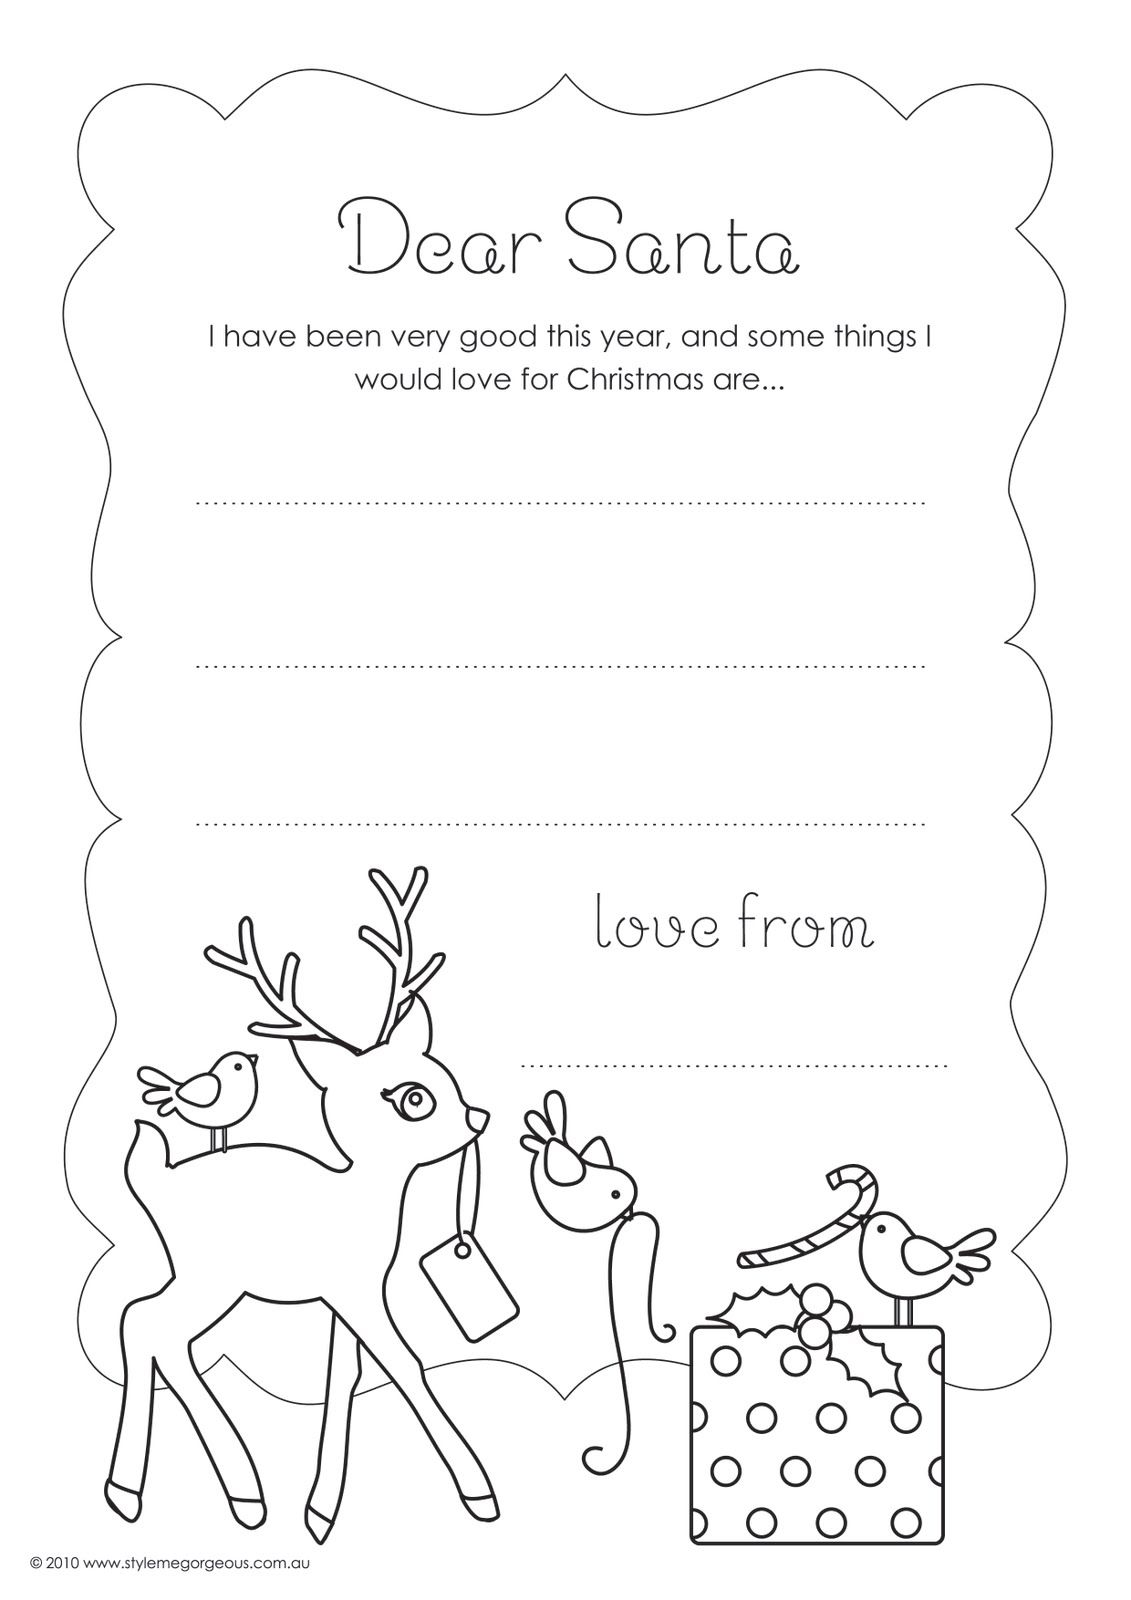 Lovely To Make Stitchery 3 Christmas Lettering Christmas Printables Santa Letter Template